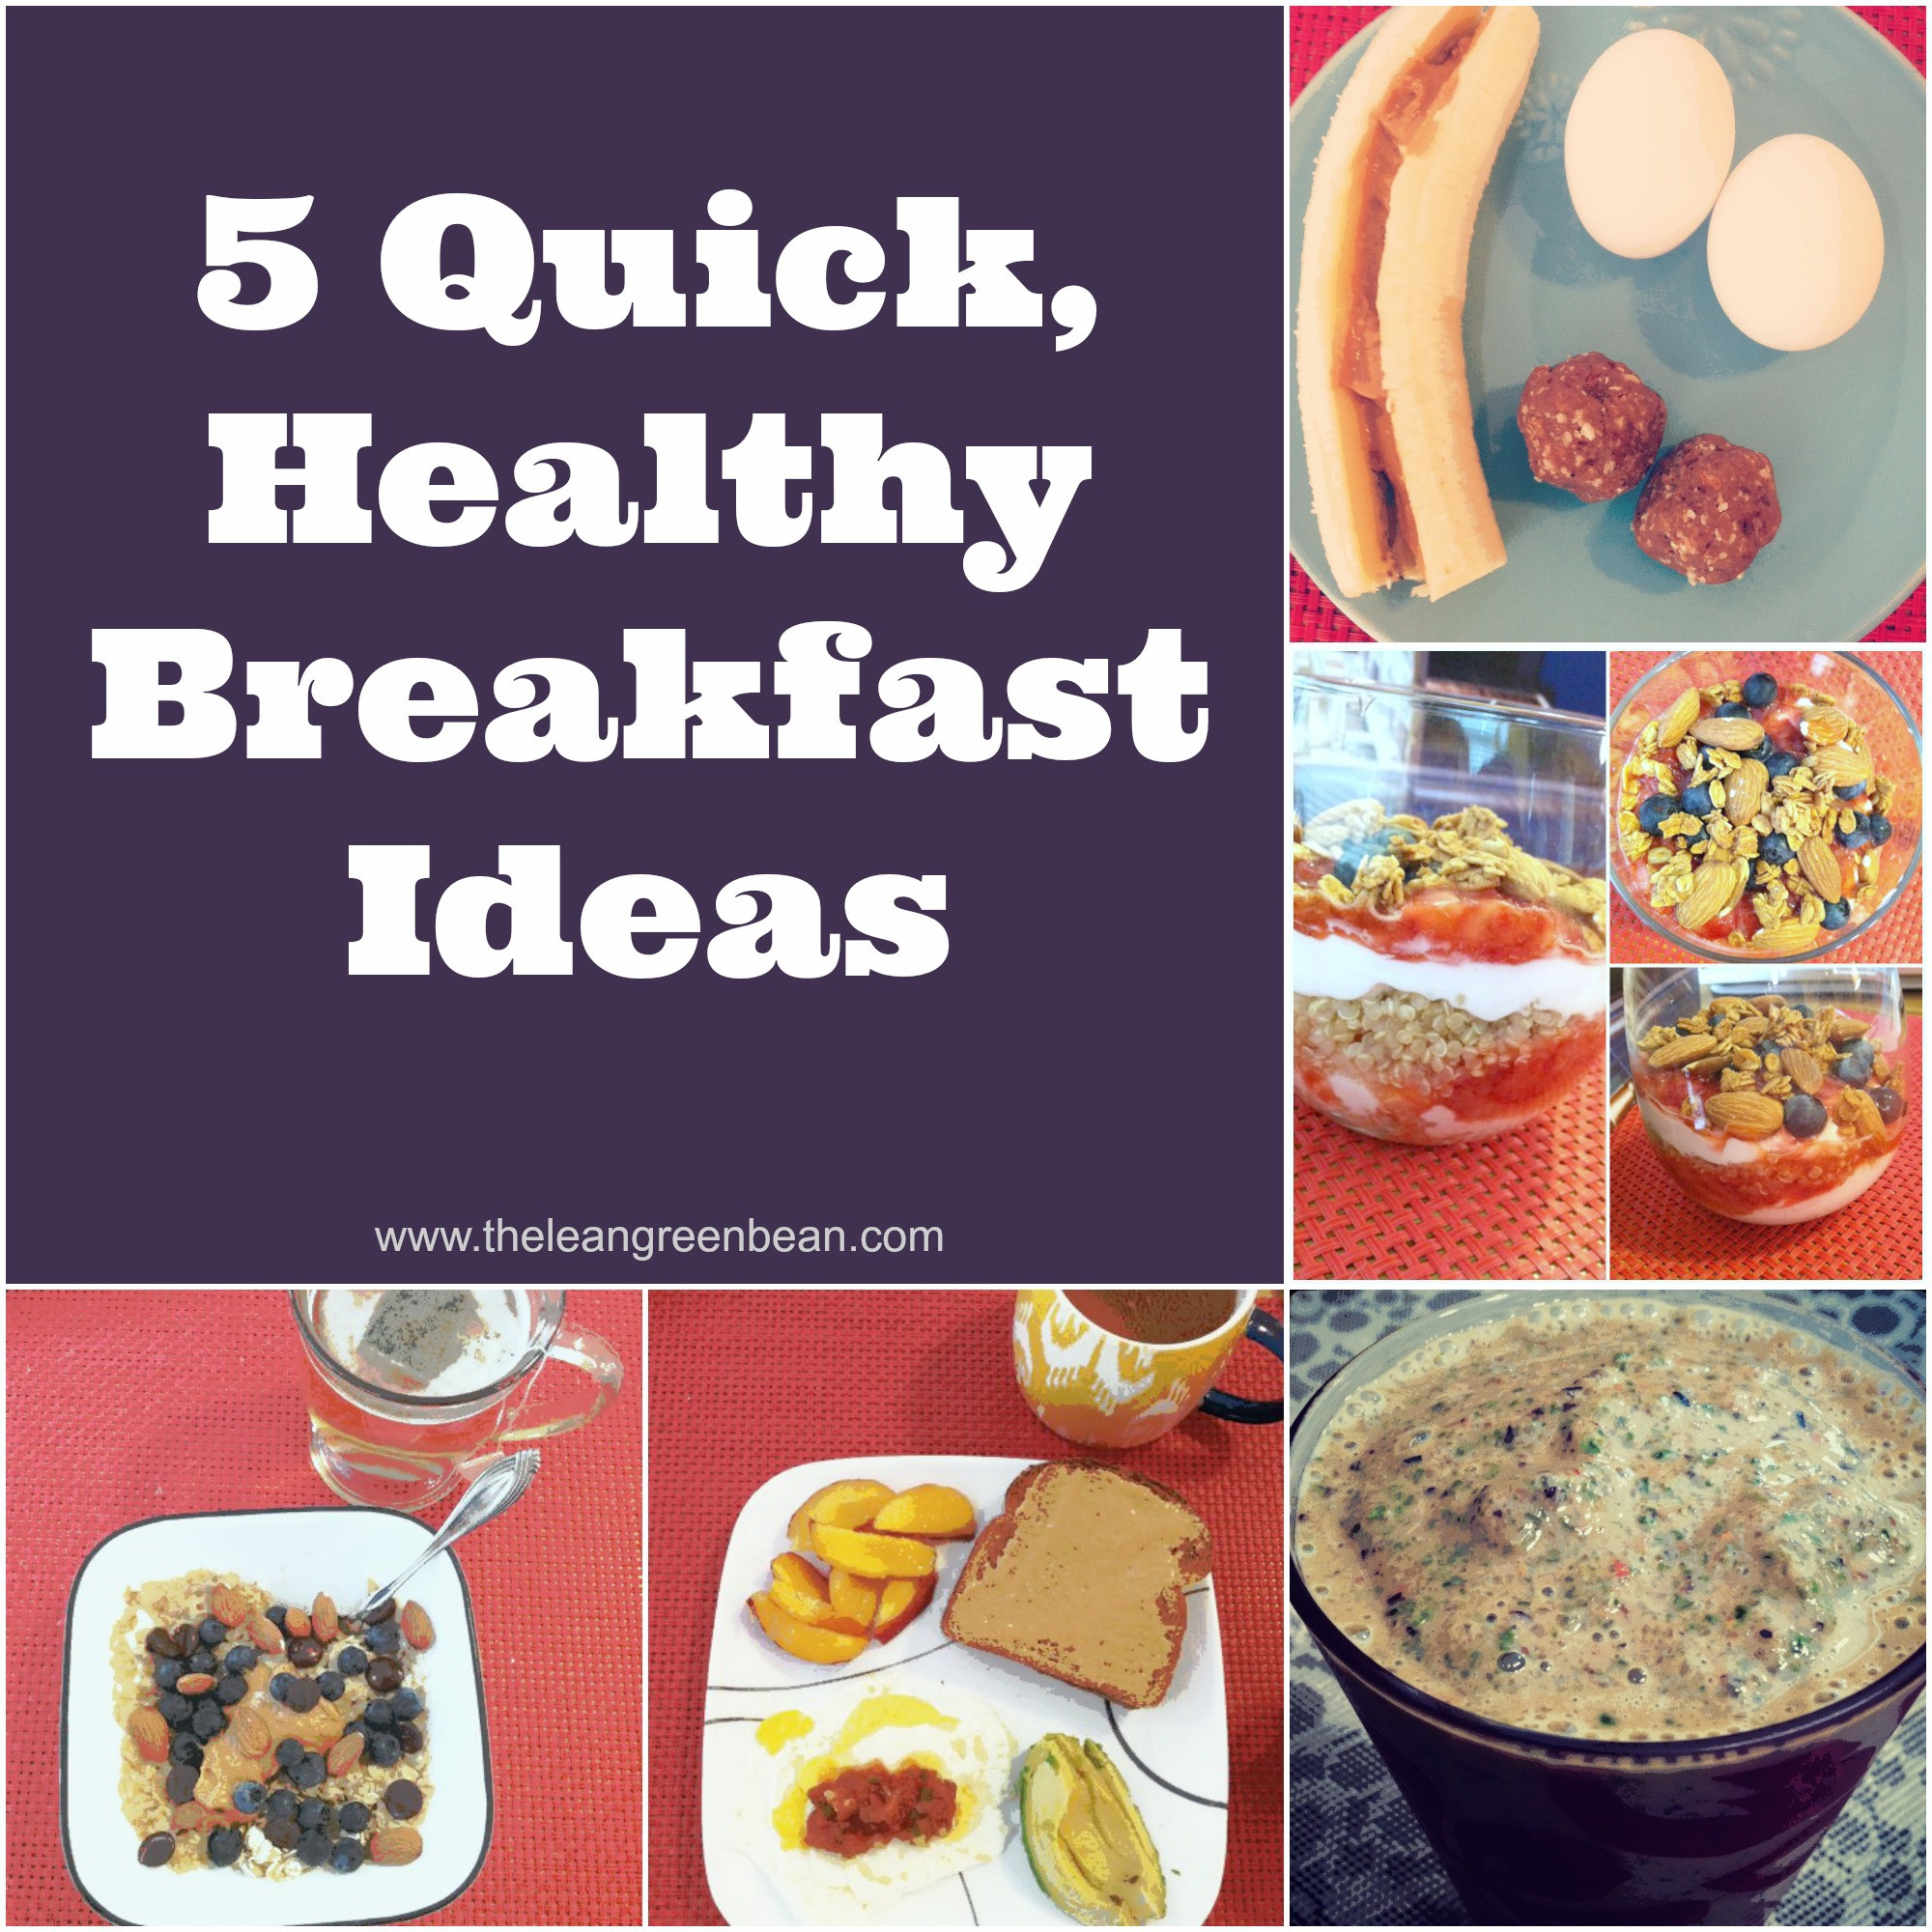 Good Healthy Breakfast Ideas  5 Quick Healthy Breakfast Ideas from a Registered Dietitian